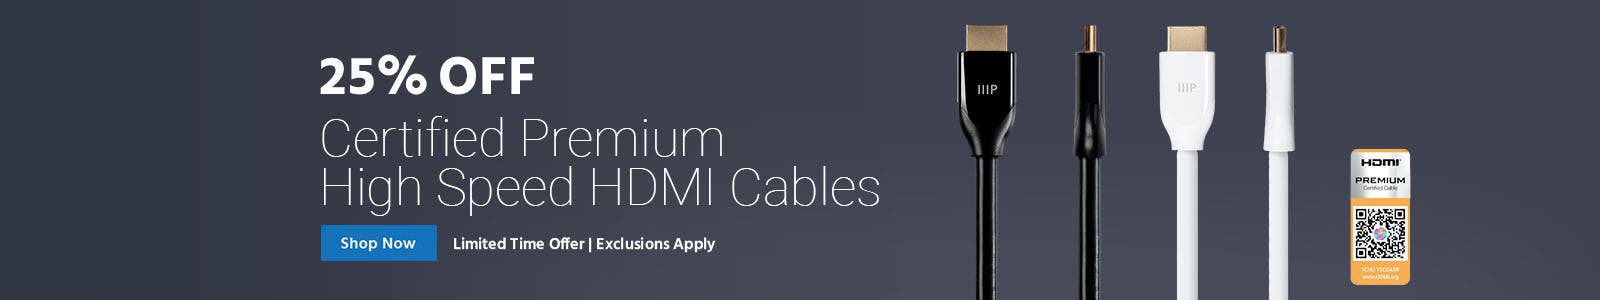 25% Off Certified Premium High Speed HDMI Cables - Shop Now - Limited Time Offer | Exclusions Apply